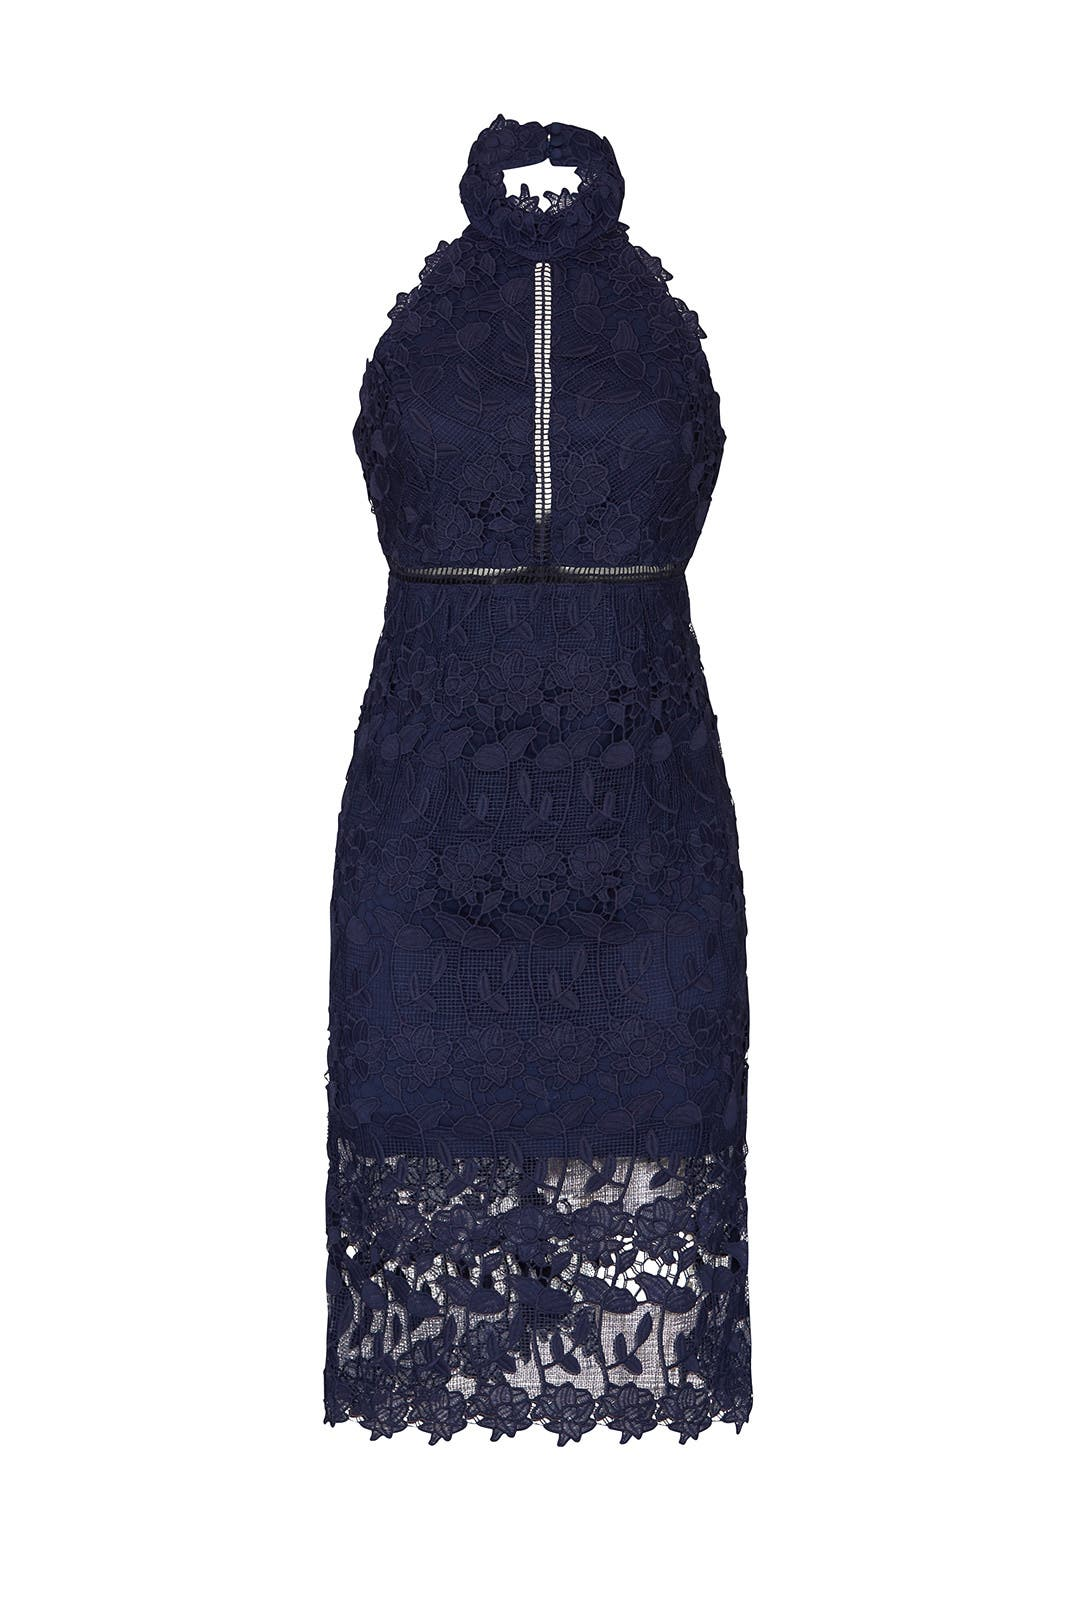 dec75b25 Navy Noni Halter Dress by BARDOT for $30 | Rent the Runway